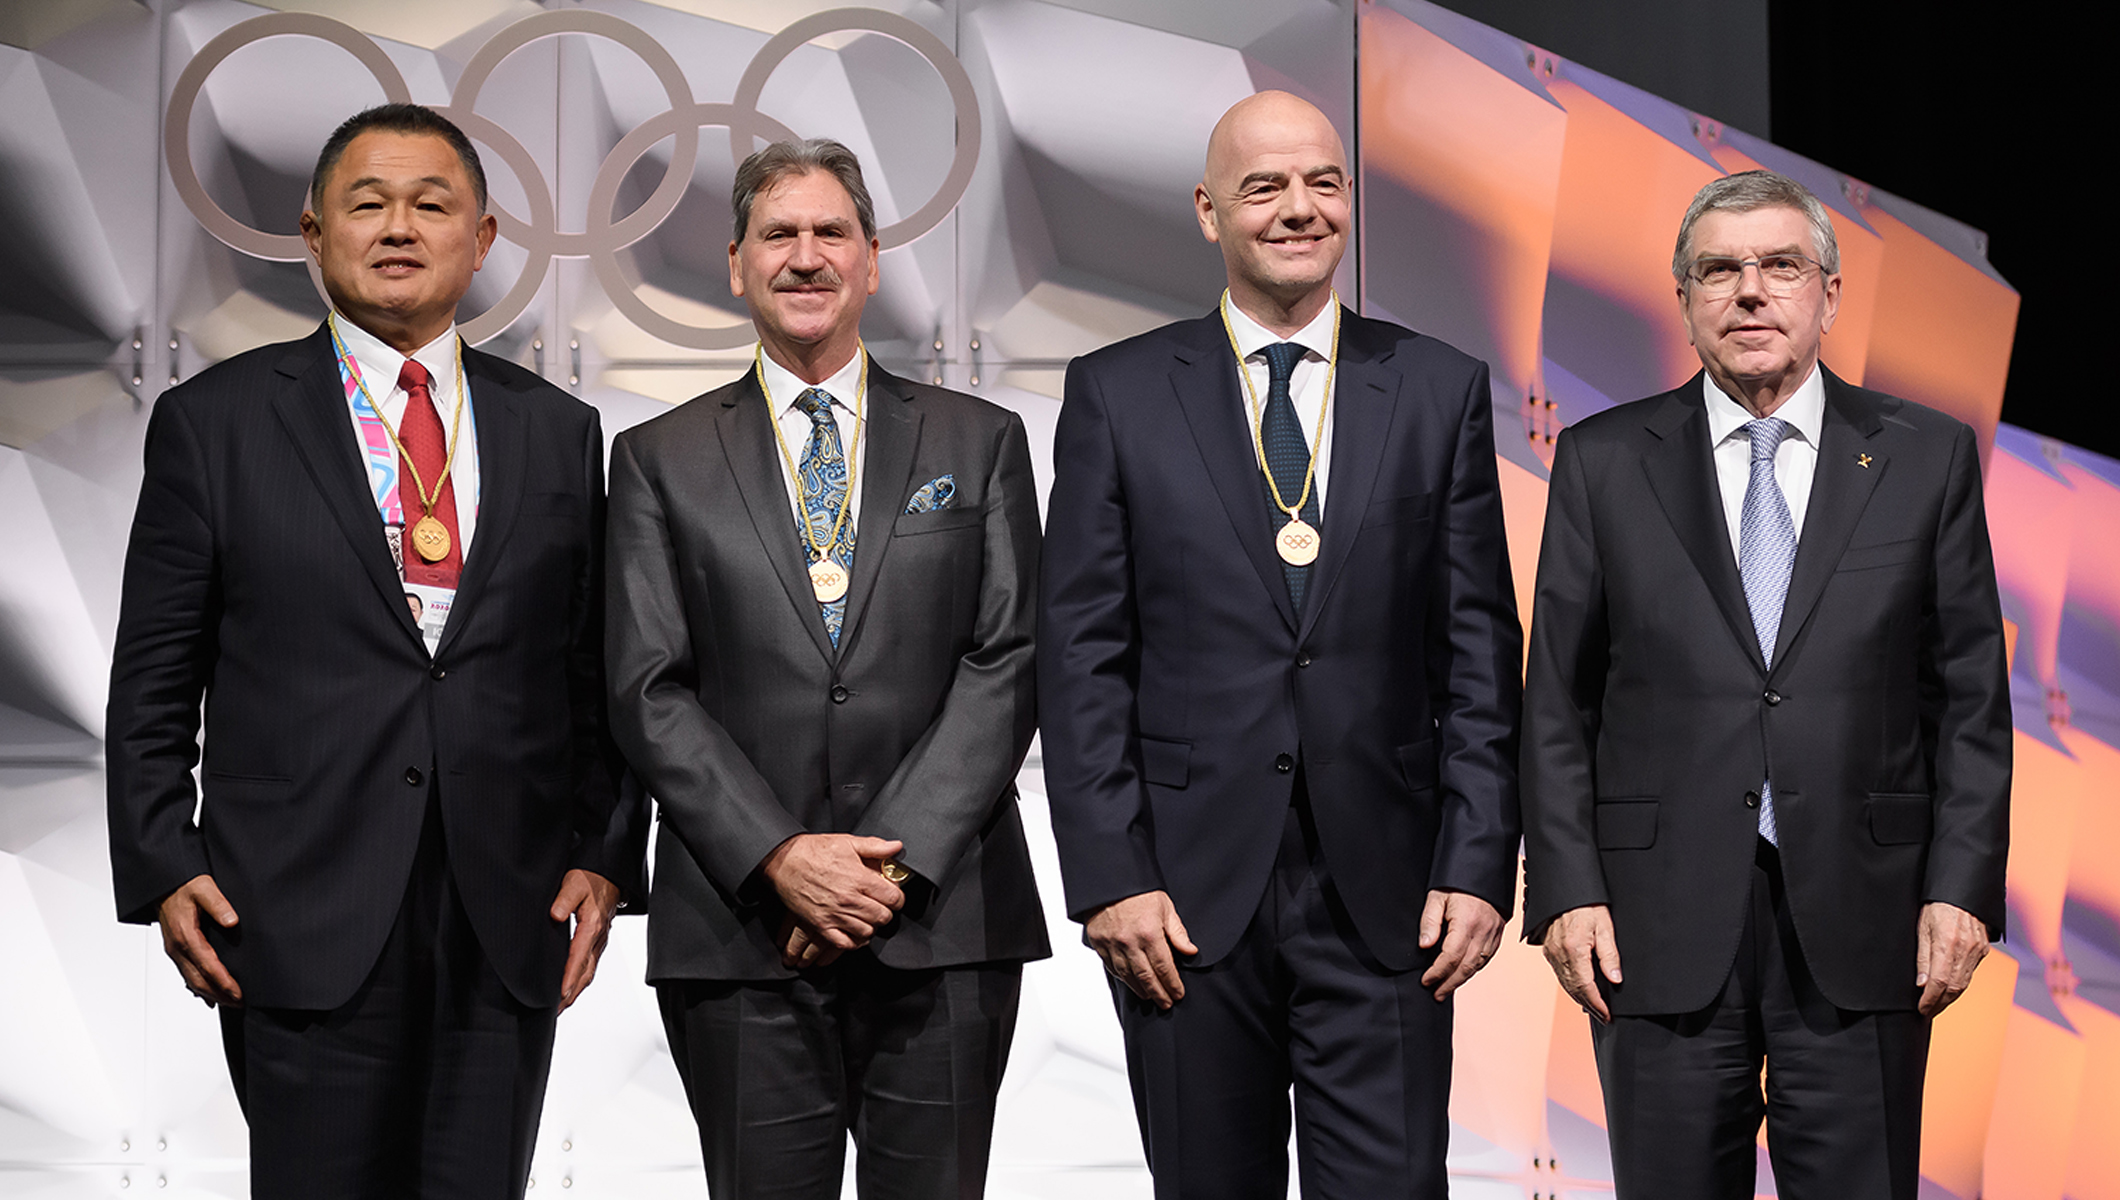 Three New Members for IOC